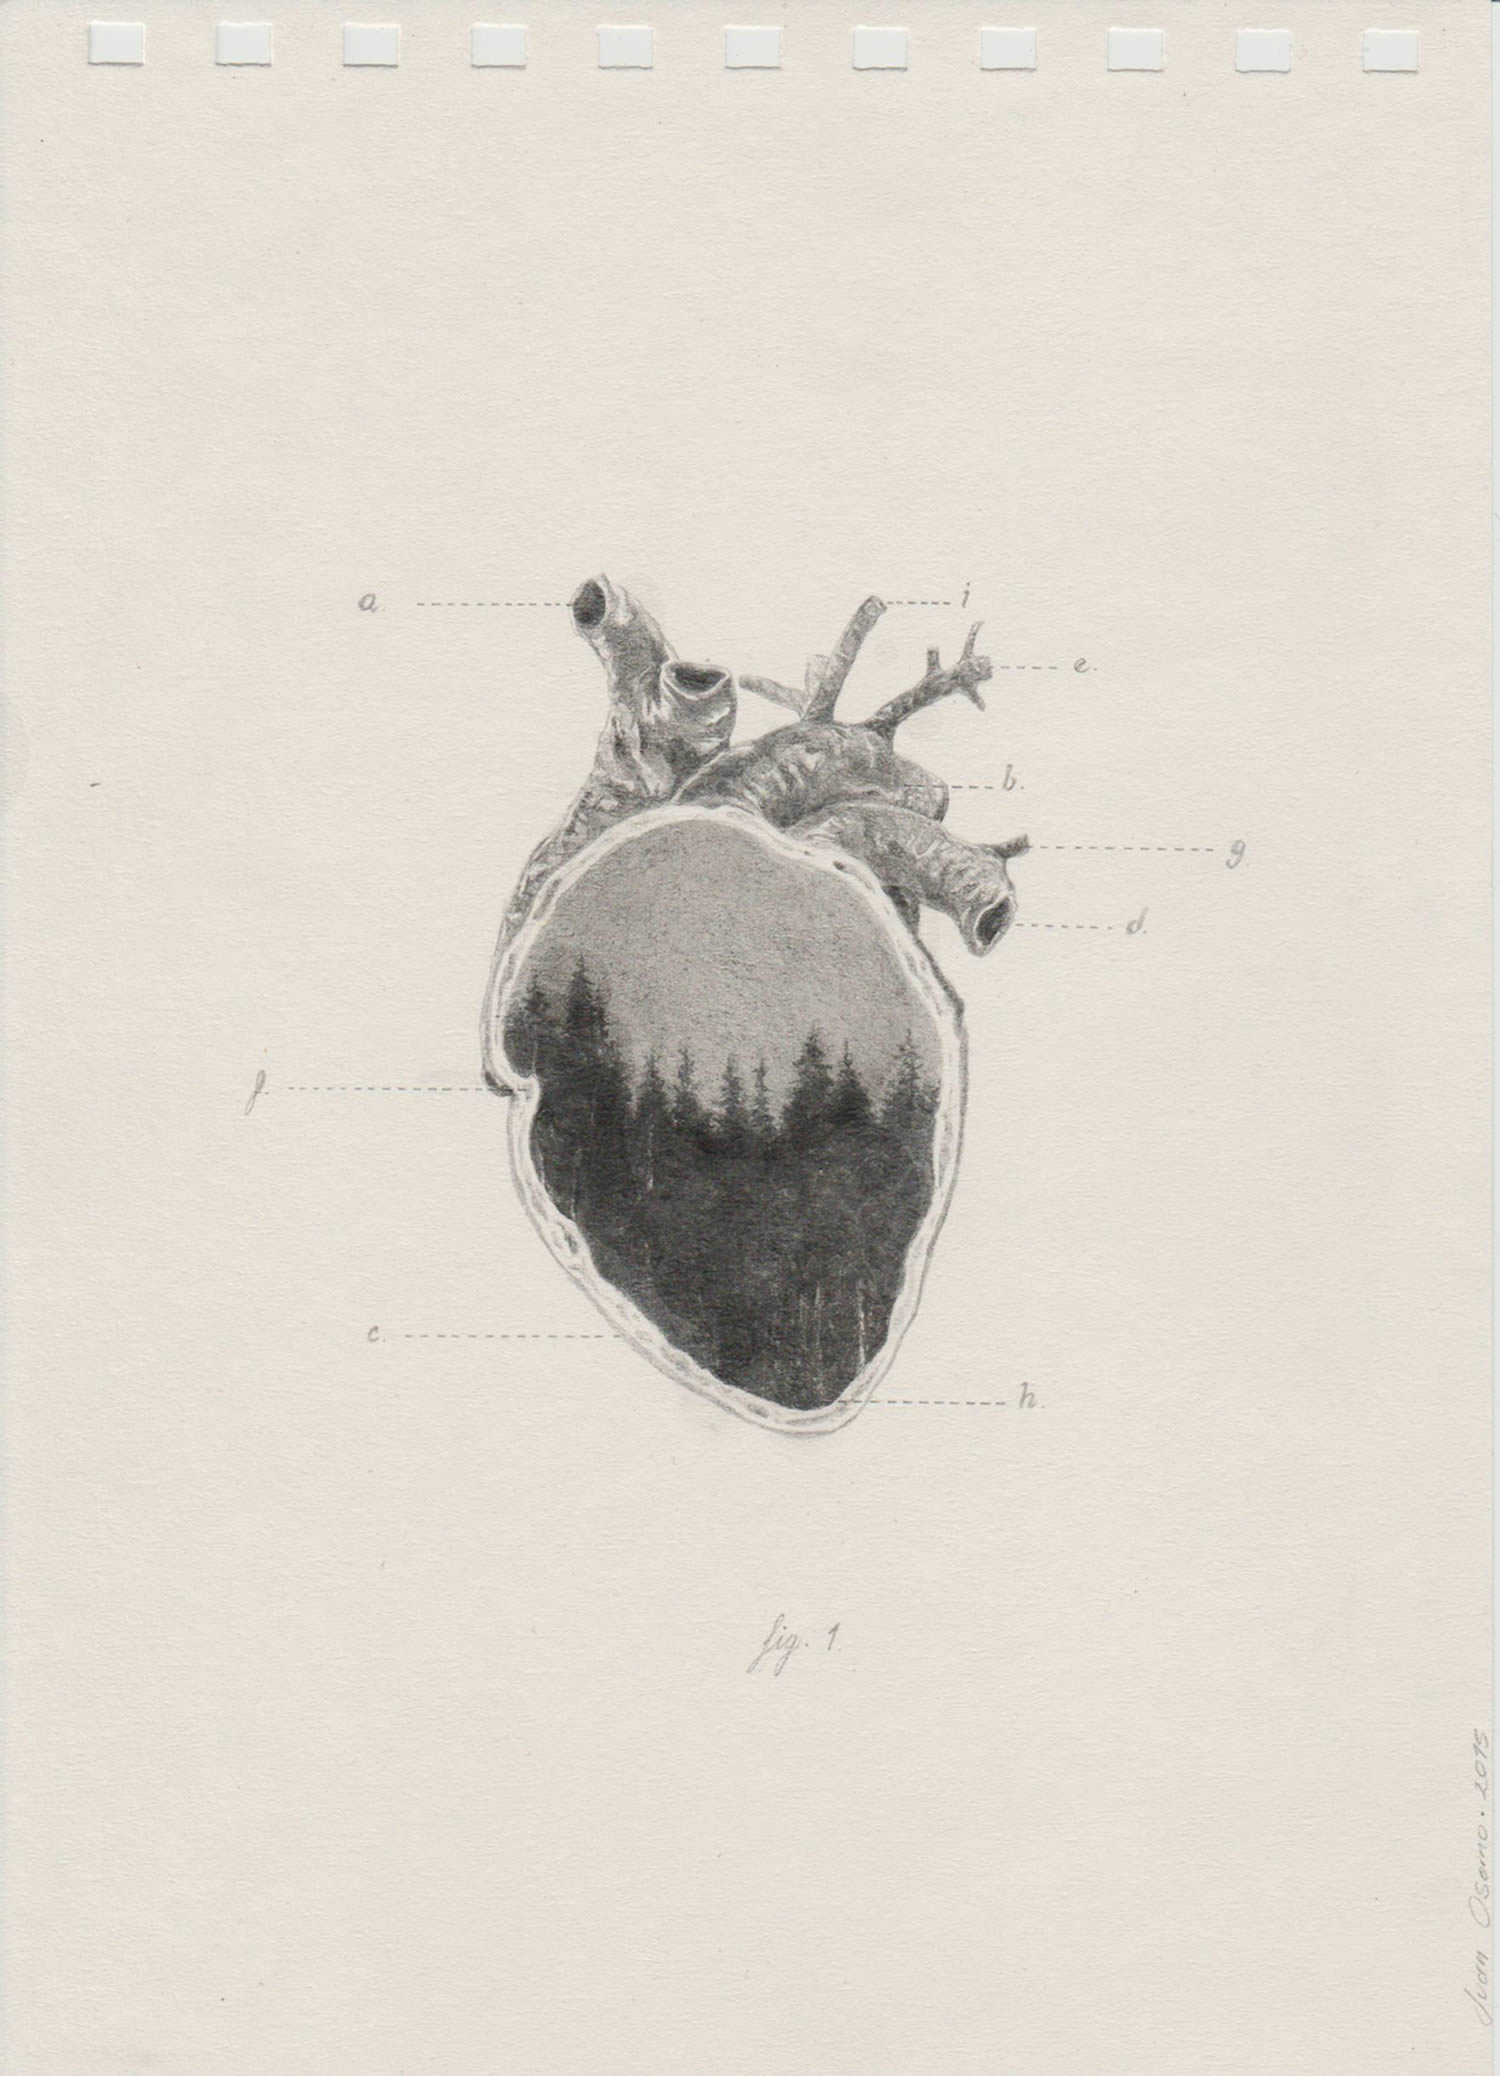 heart with double exposure landscape image, drawing